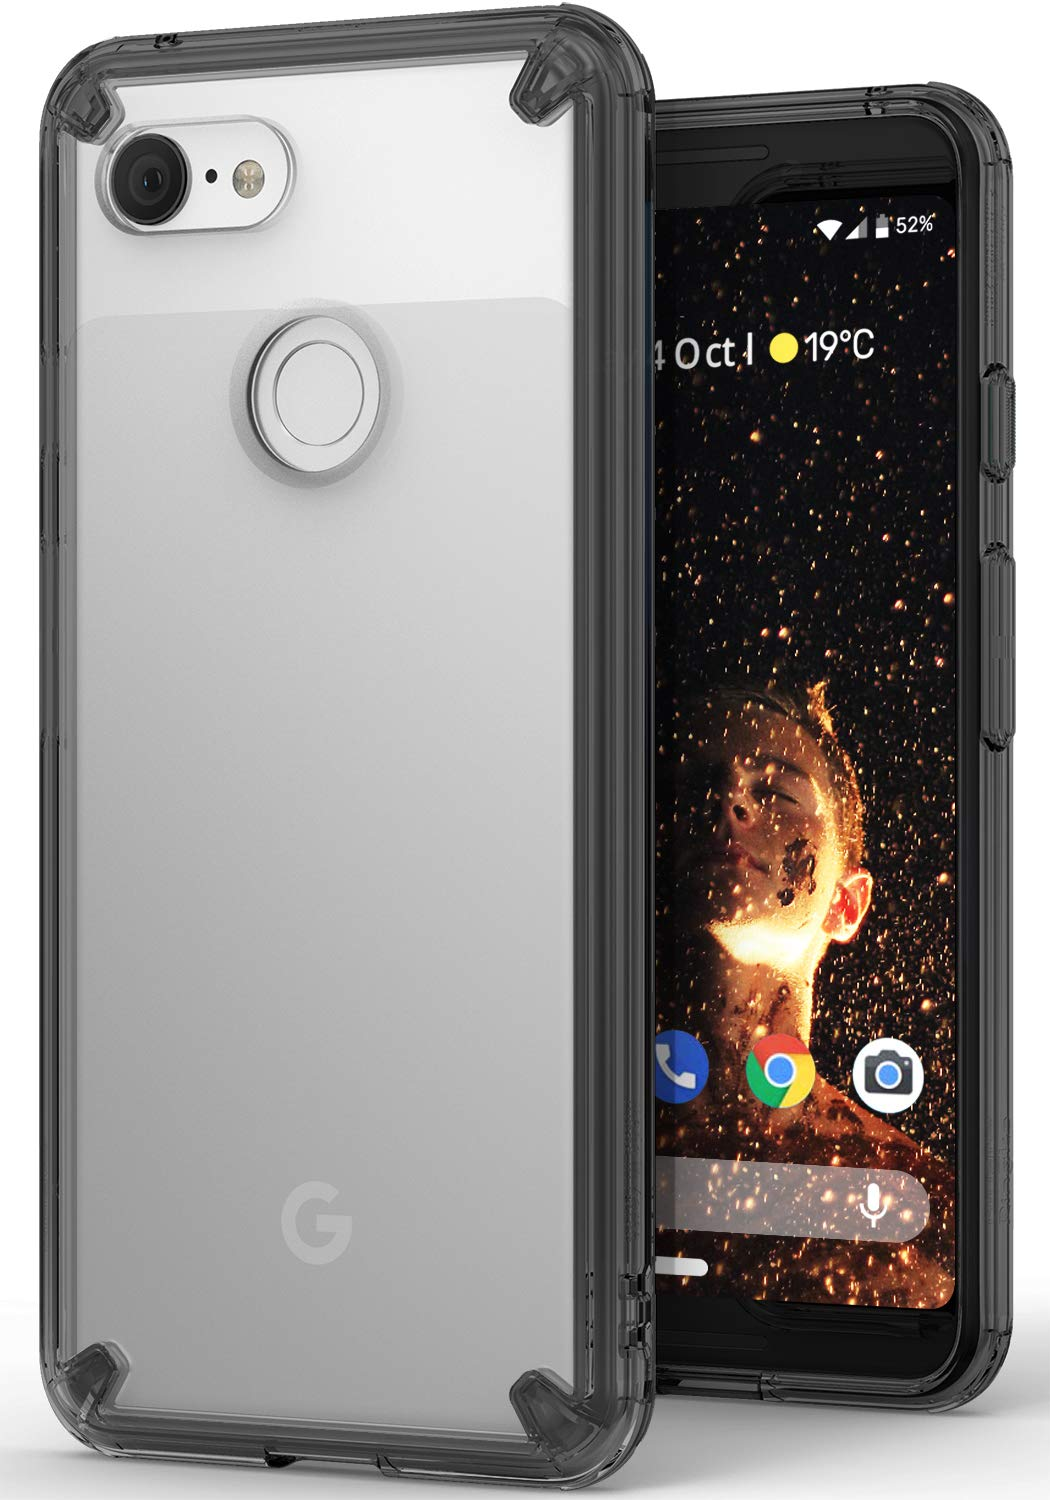 Ringke [Fusion] Compatible with Pixel 3 Case, Clear Transparent PC Back TPU Bumper [Drop Defense] Raised Bezels Scratch Protection Natural Form Cover for Google Pixel 3 - Smoke Black RFS-GPX3-SB